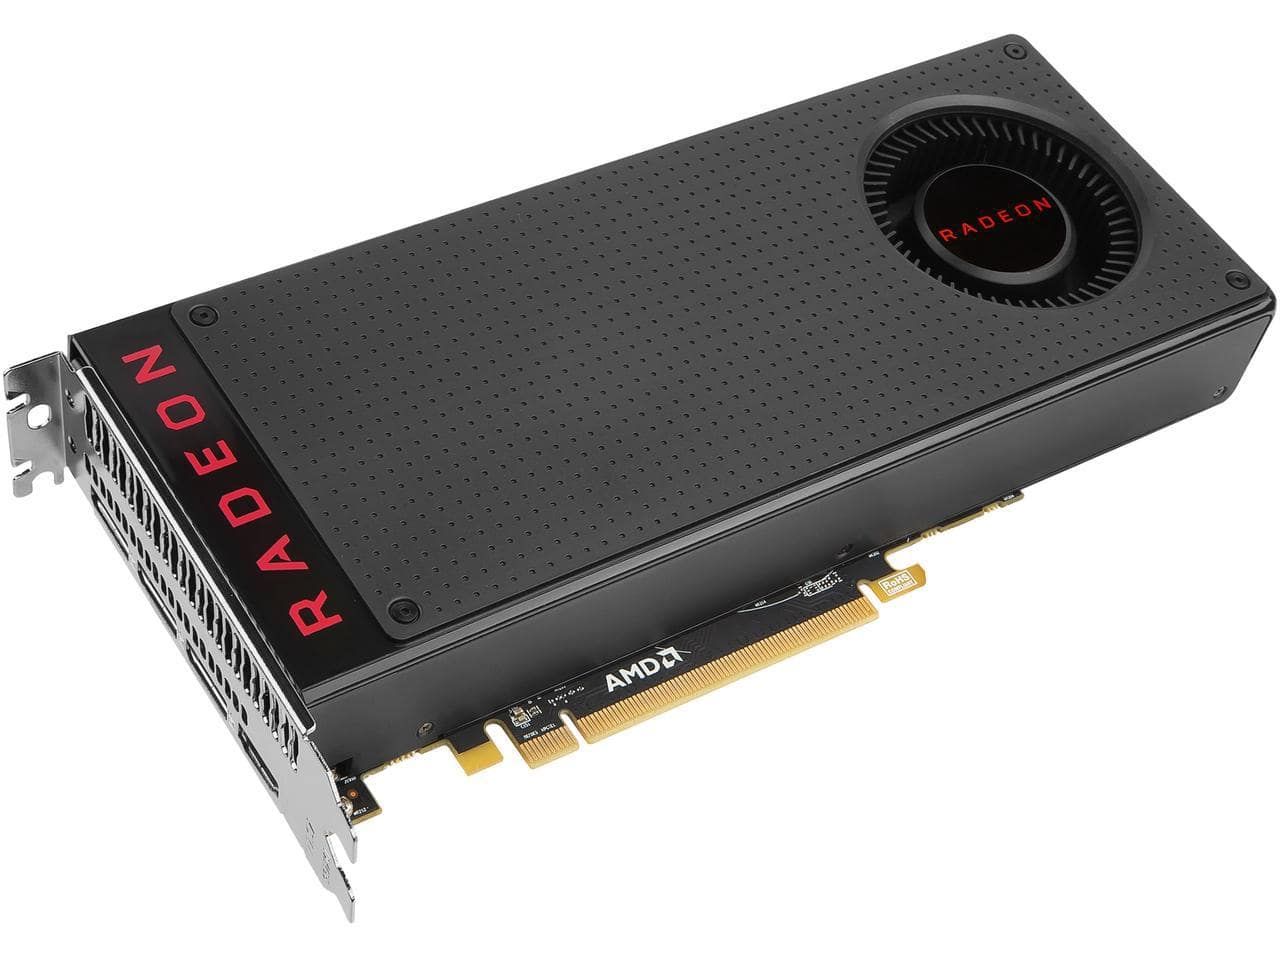 MSI Radeon RX 480 4gb $150 AR or less w /DOOM